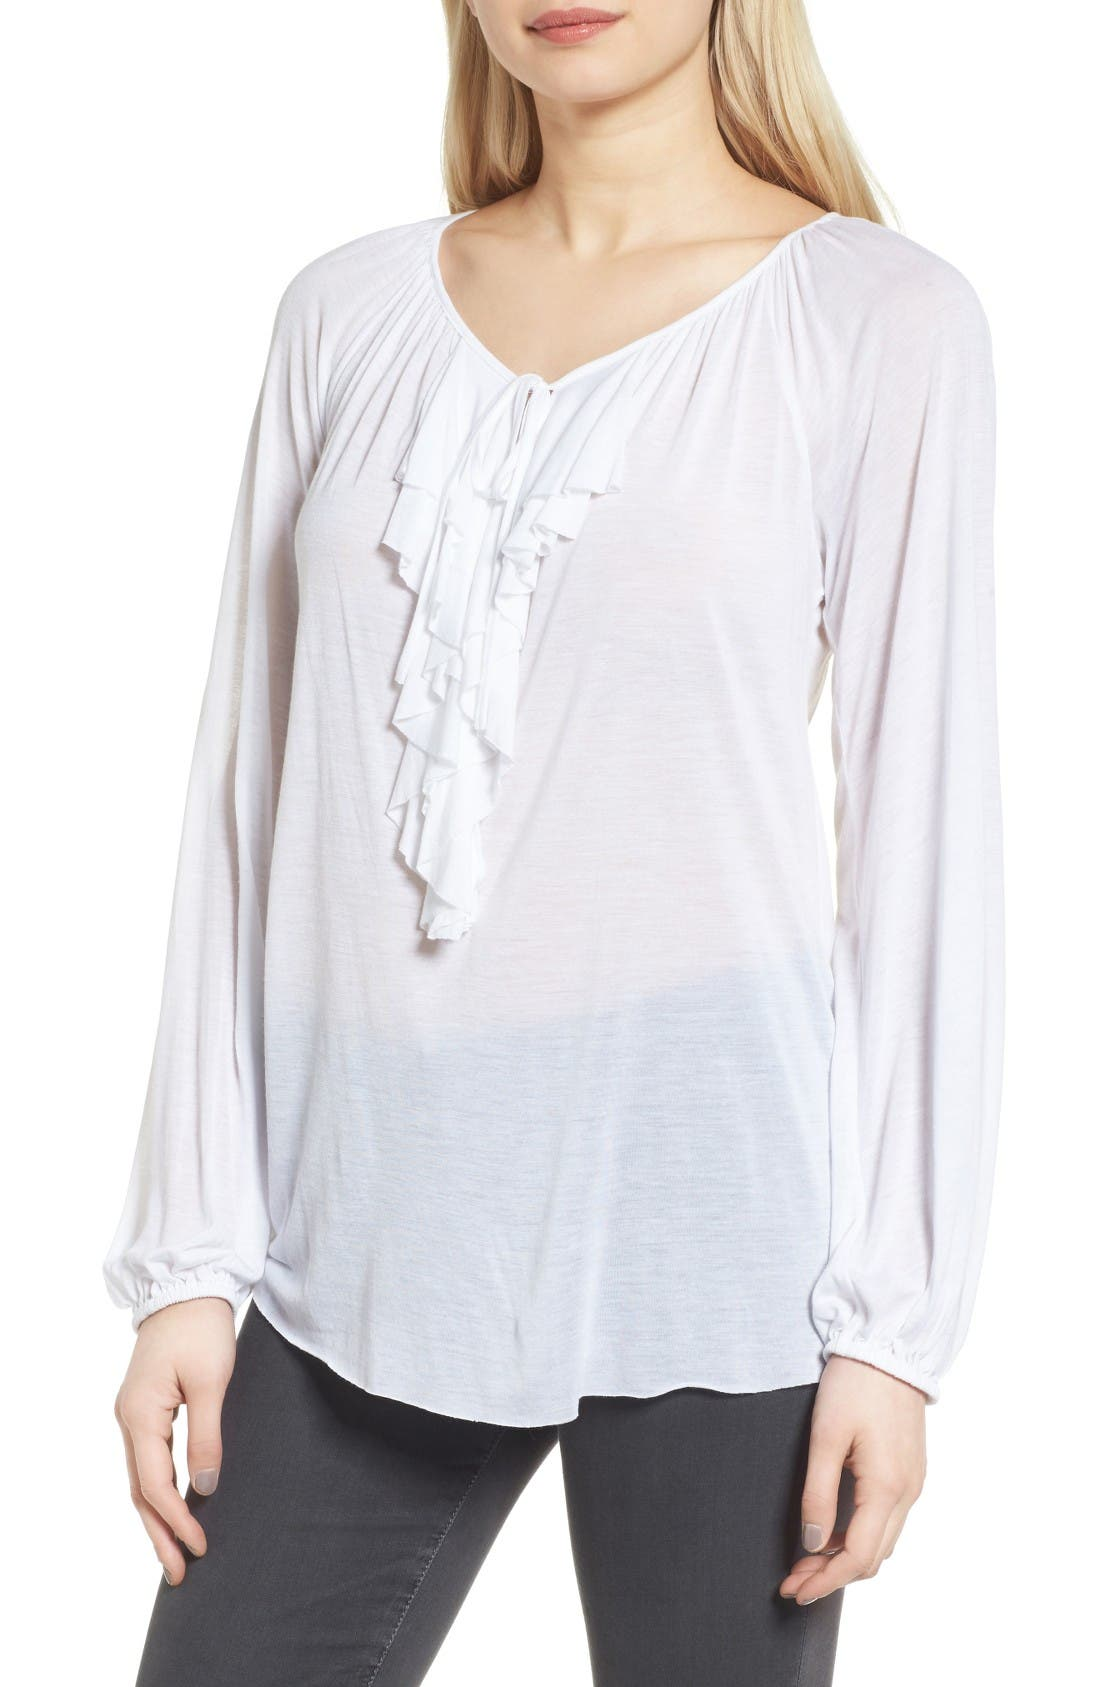 Alternate Image 1 Selected - Bailey 44 Trinidad Blouse